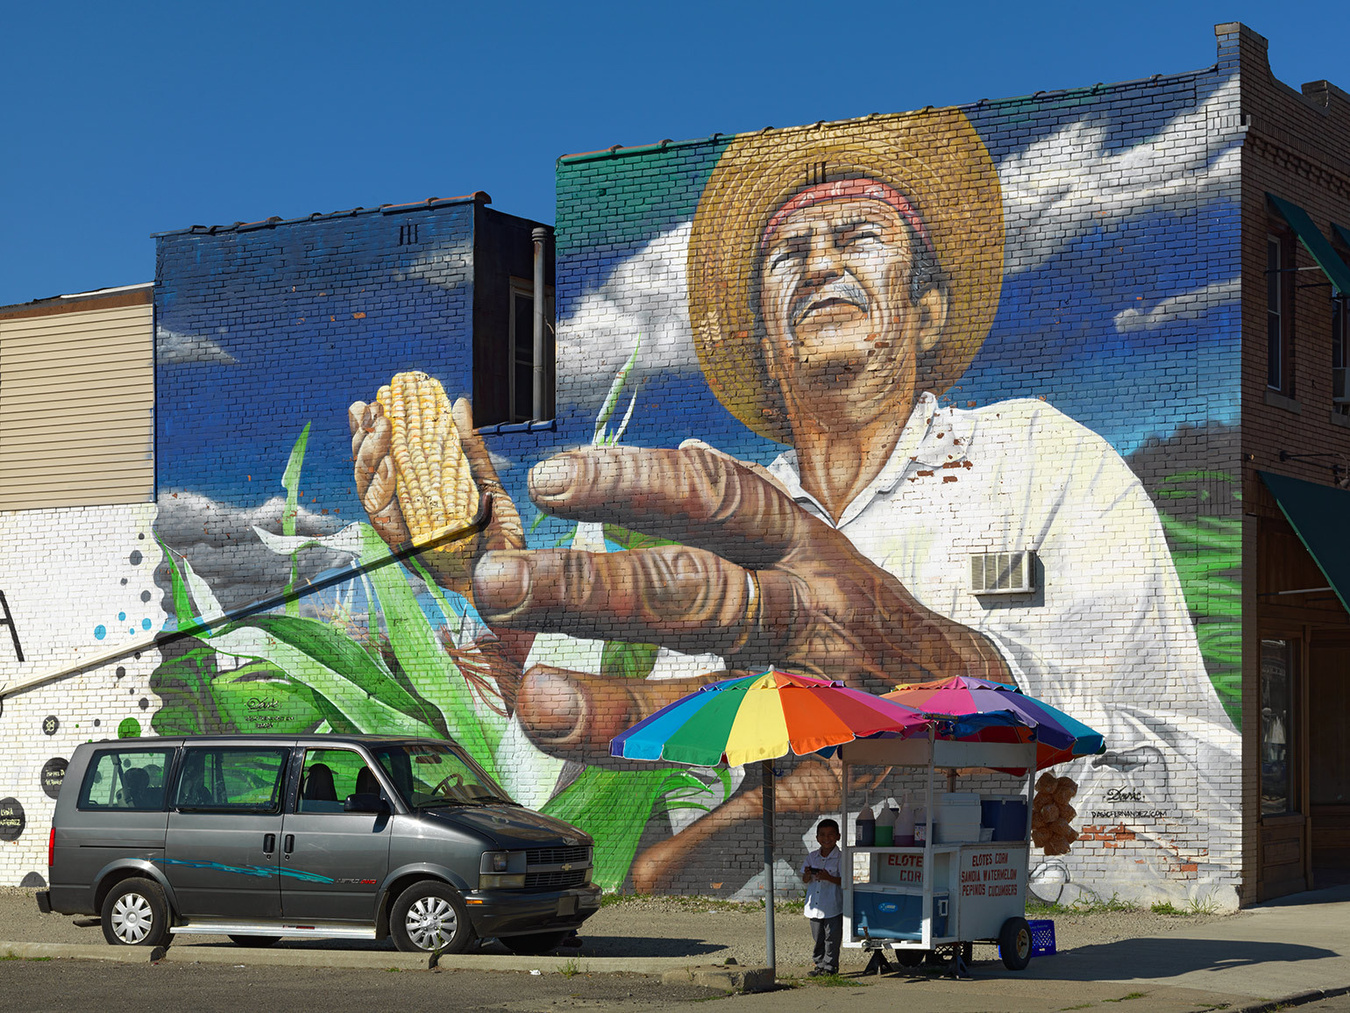 Street Vendor in Front of Large Wall Mural, Mexicantown, Detroit 2012